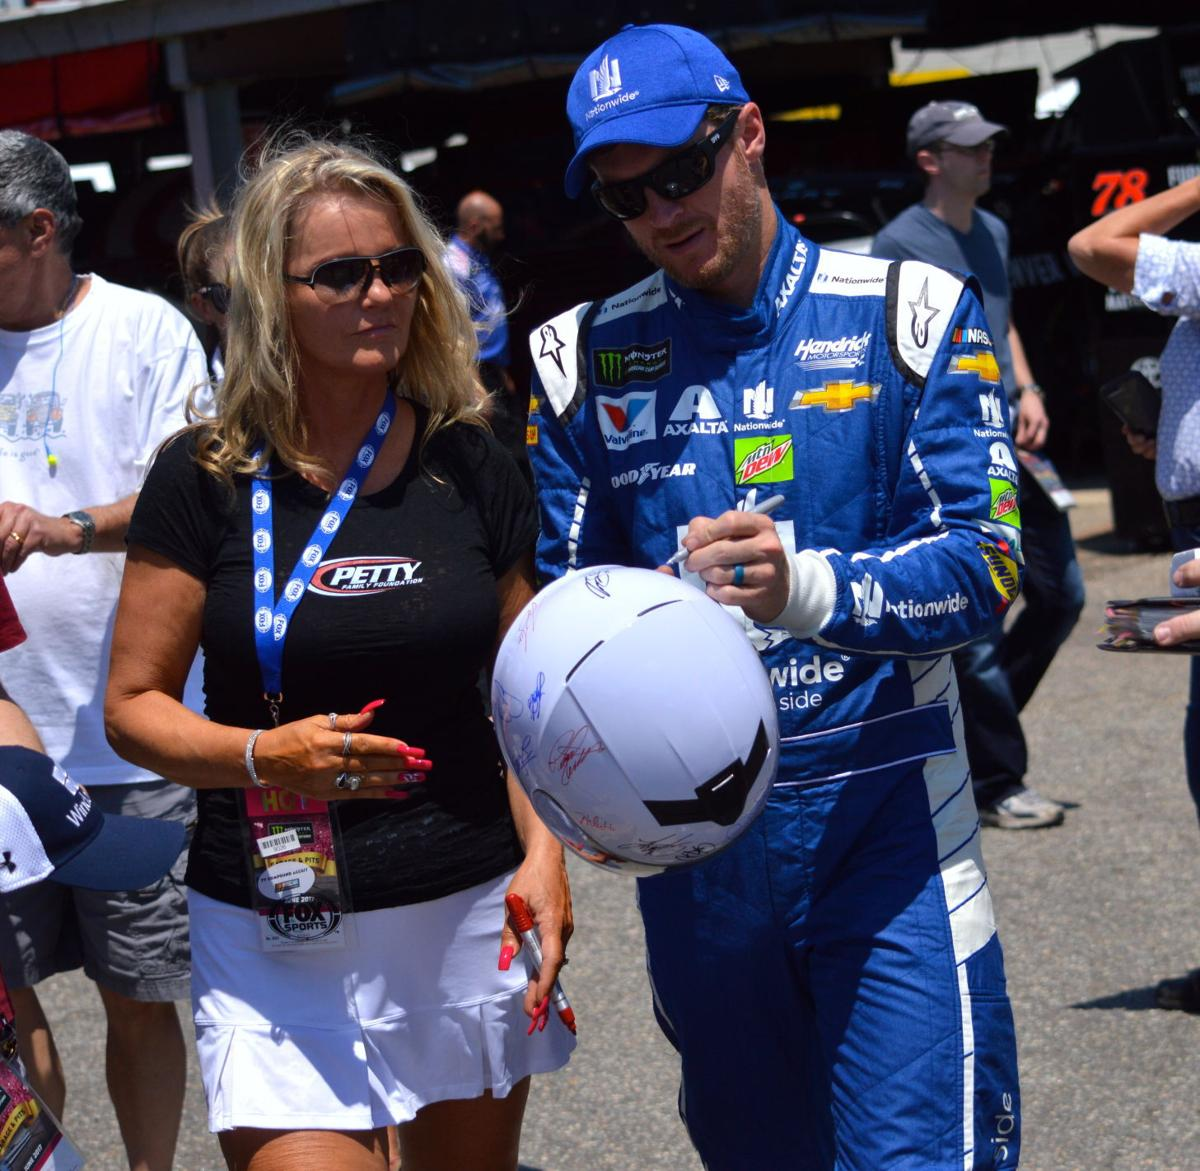 Ridgely Car Show To Auction Signed NASCAR Helmet News - Ridgely car show